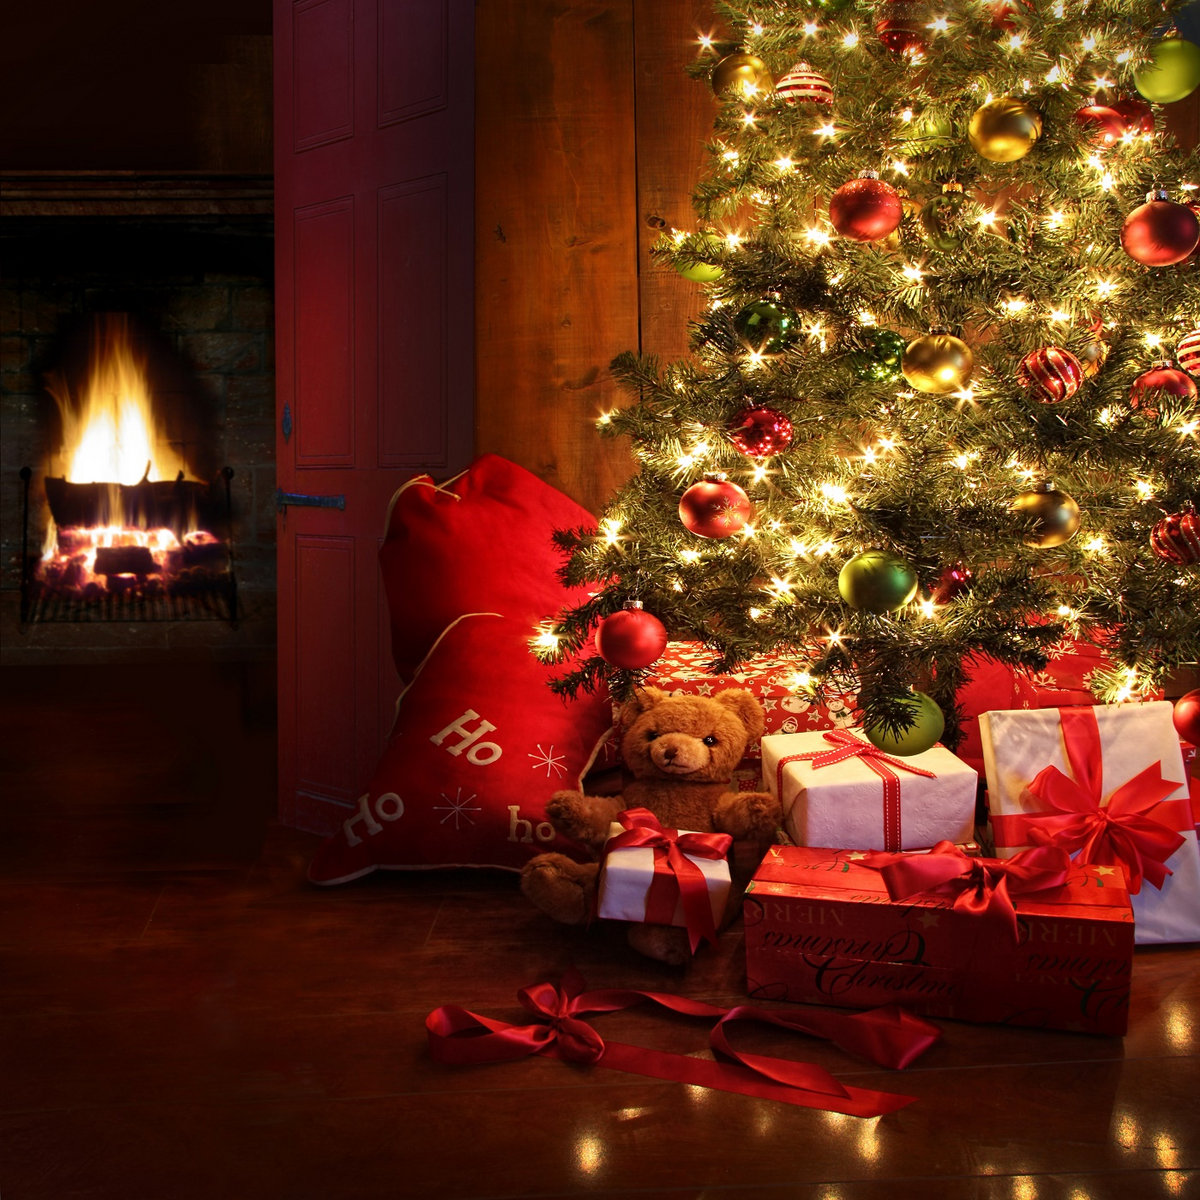 Instrumental Christmas Music.Instrumental Christmas Music Soothing Relaxation